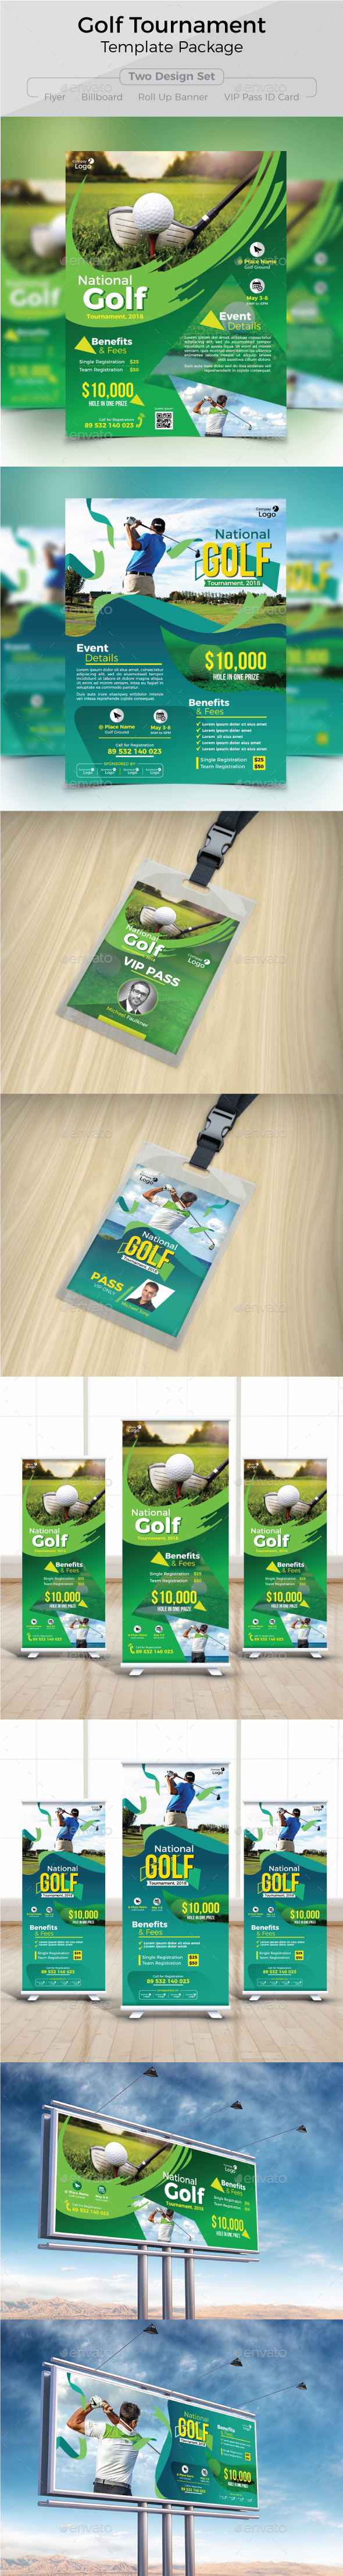 Golf Tournament Template Package - Sports Events